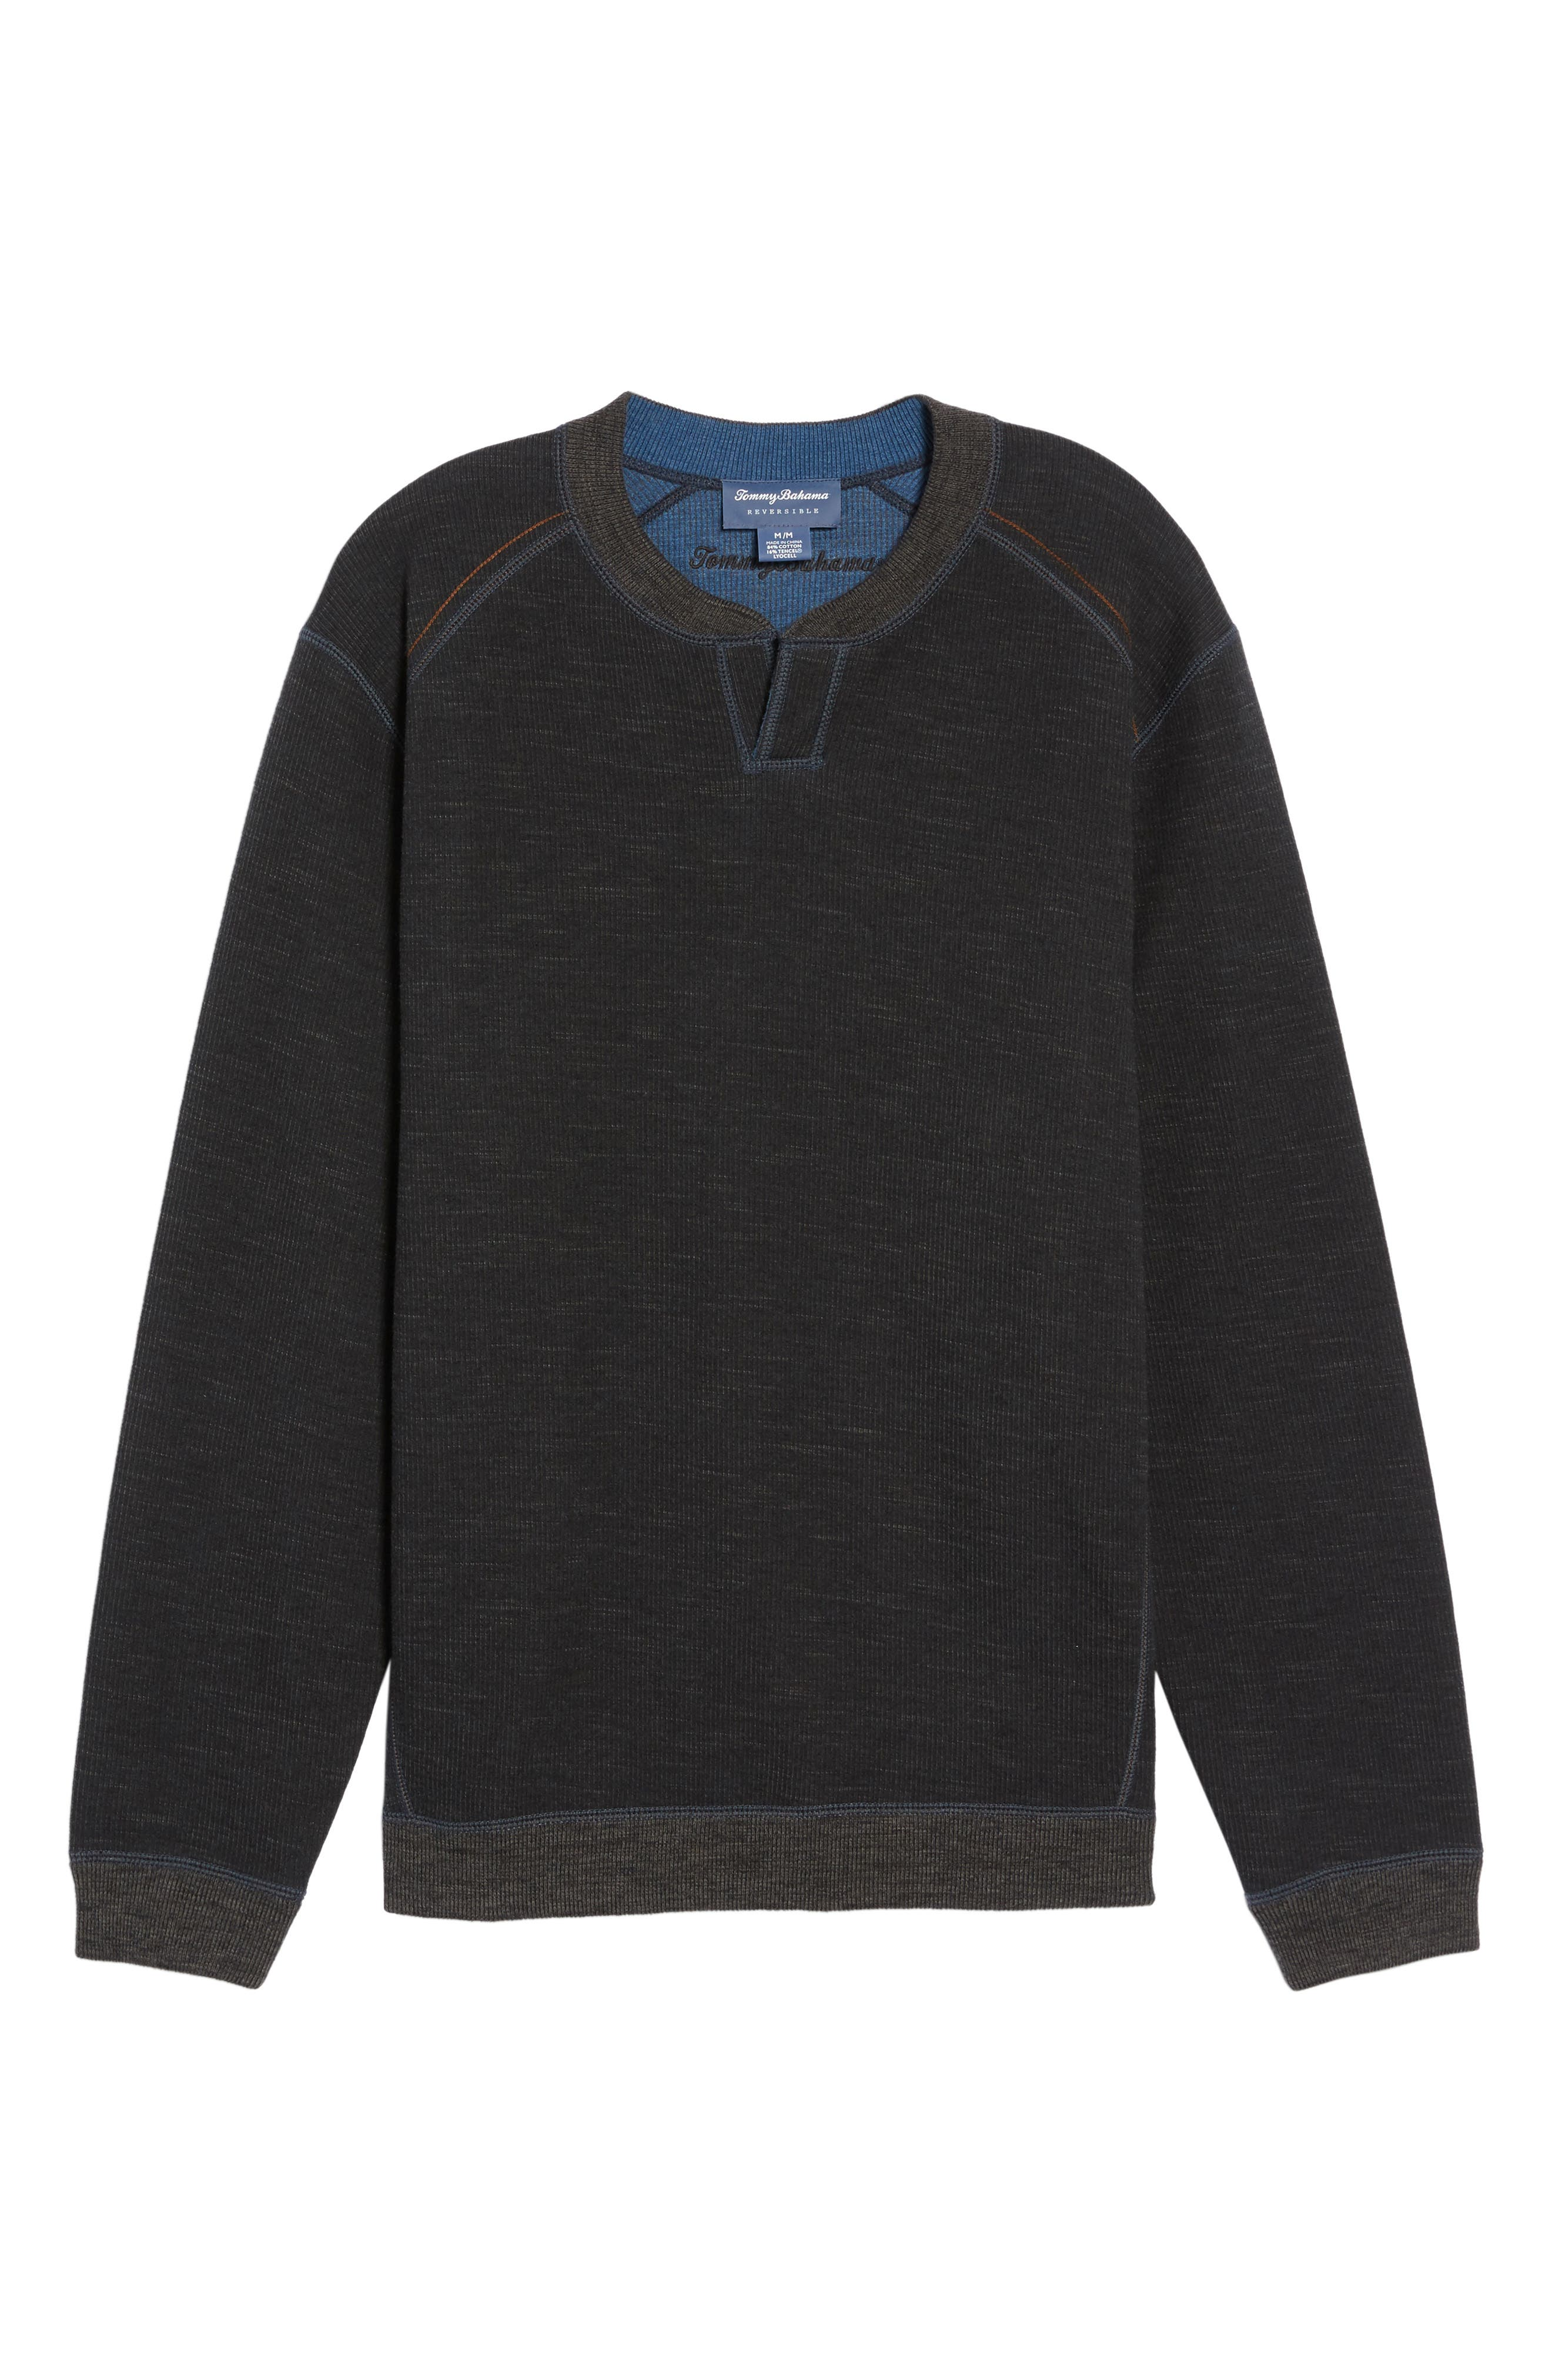 Flipsider Abaco Pullover,                             Alternate thumbnail 5, color,                             Black